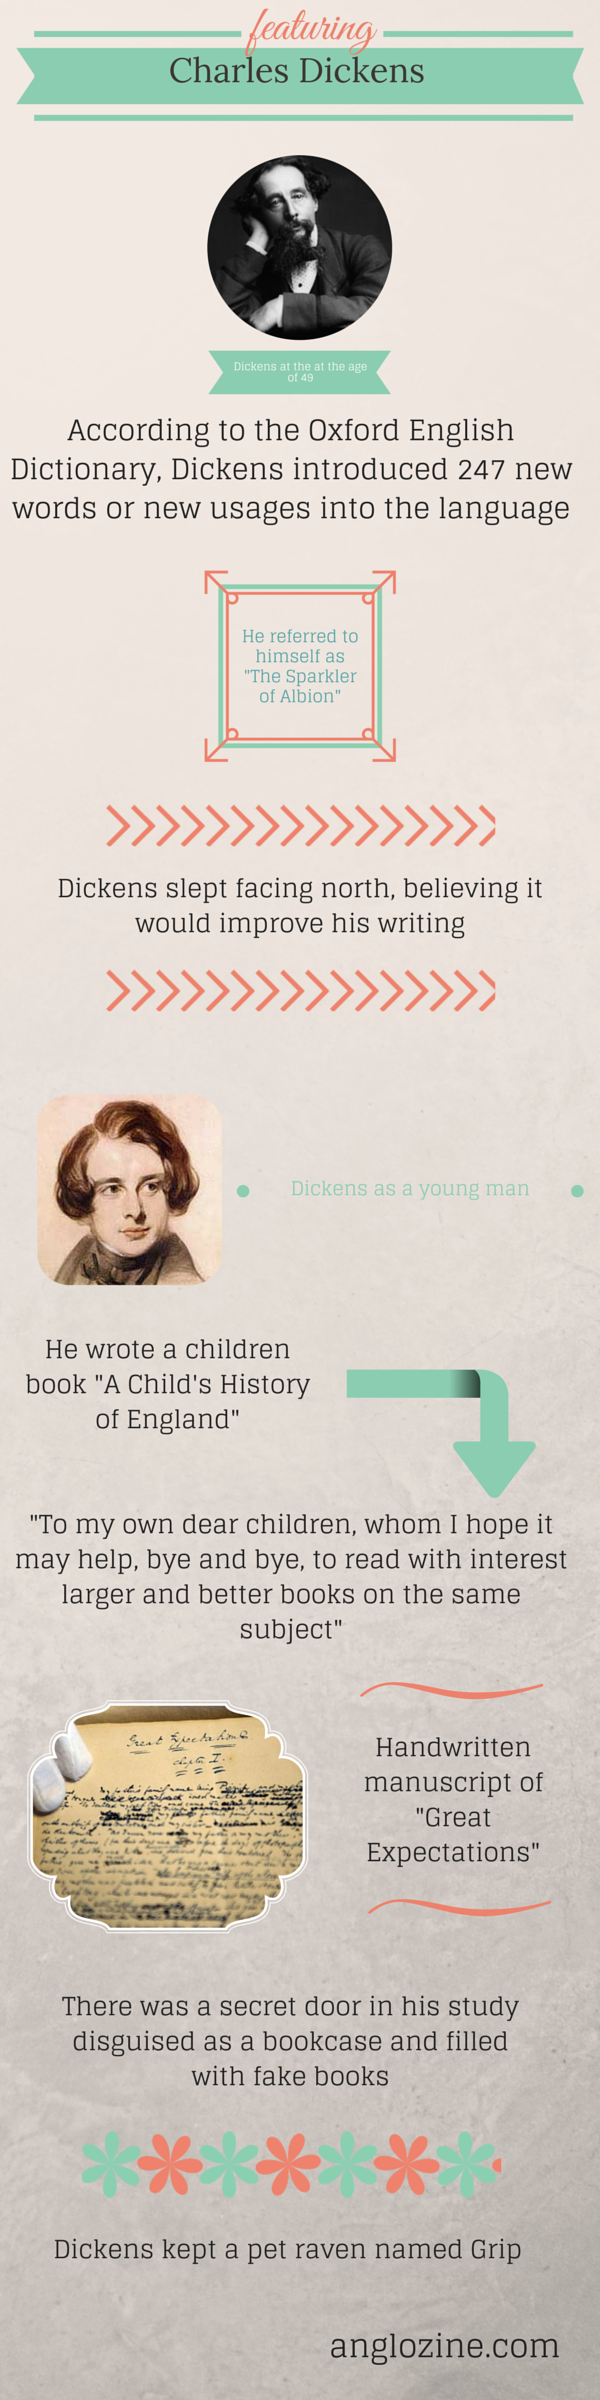 5 Facts about Charles Dickens